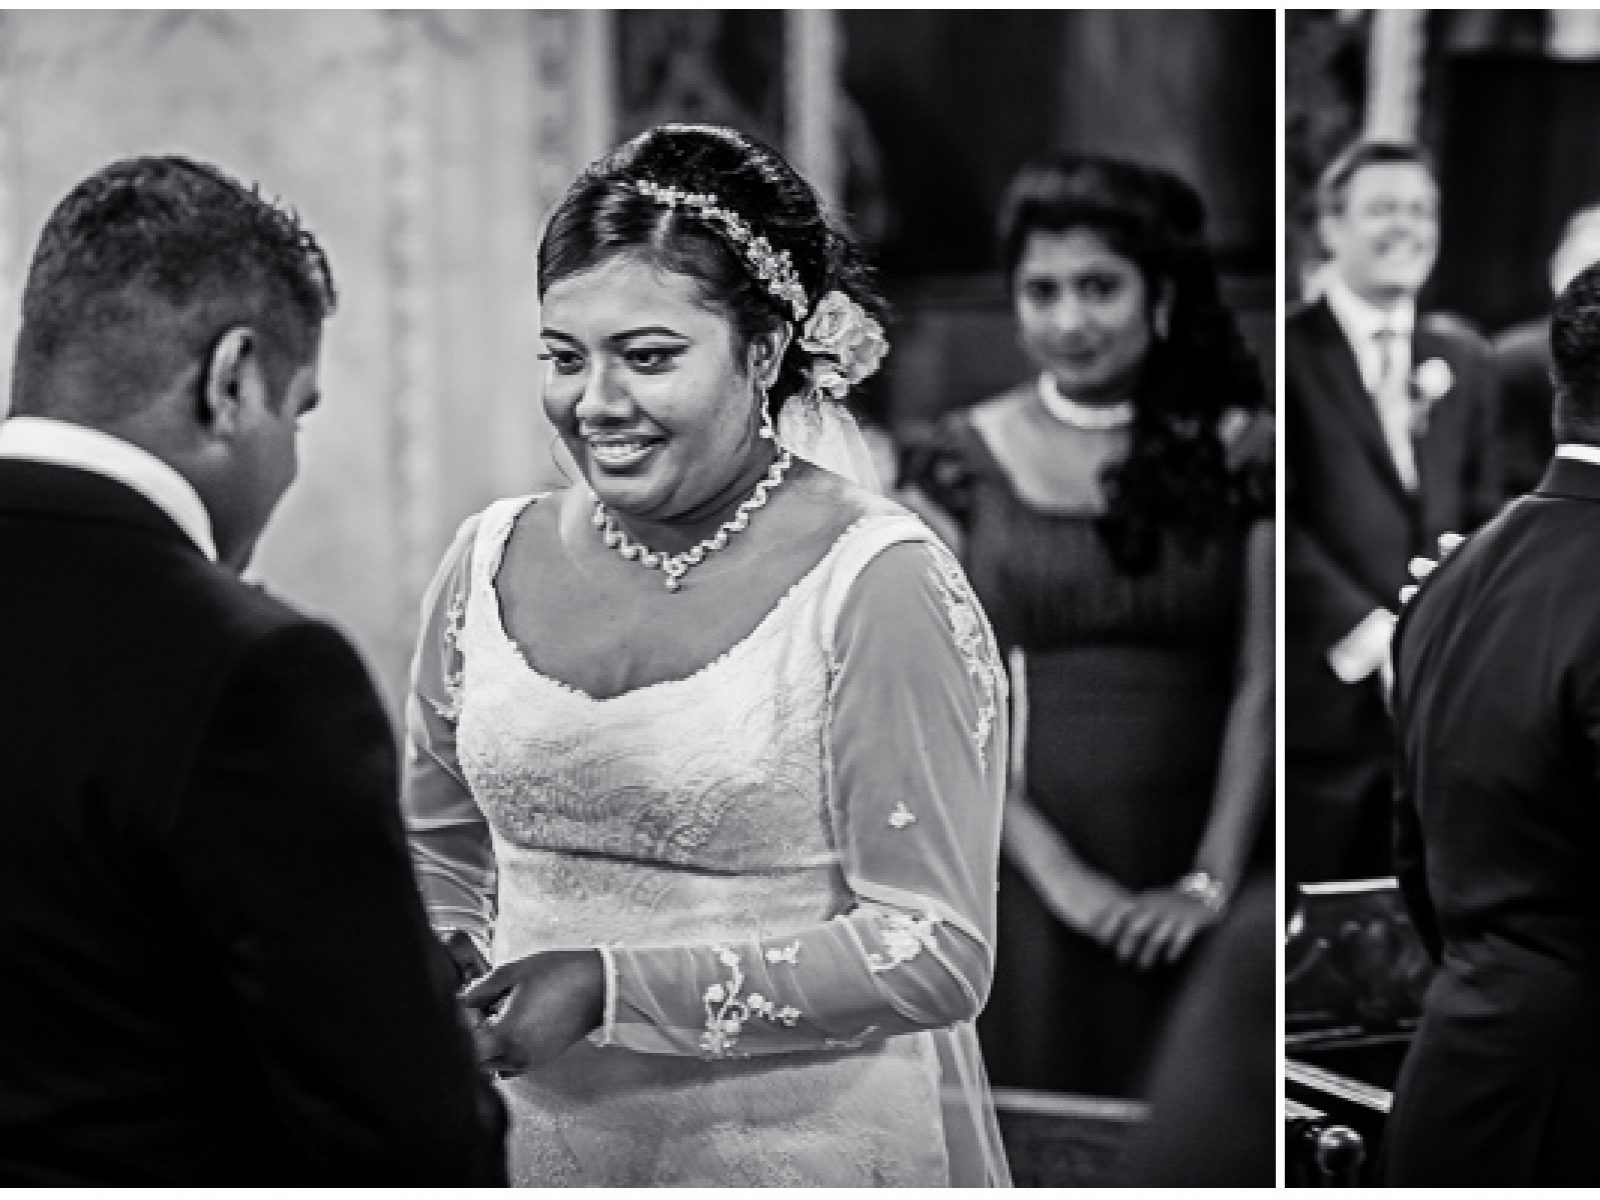 561 1600x1200 - Darshani and Anthony - wedding photographer in London